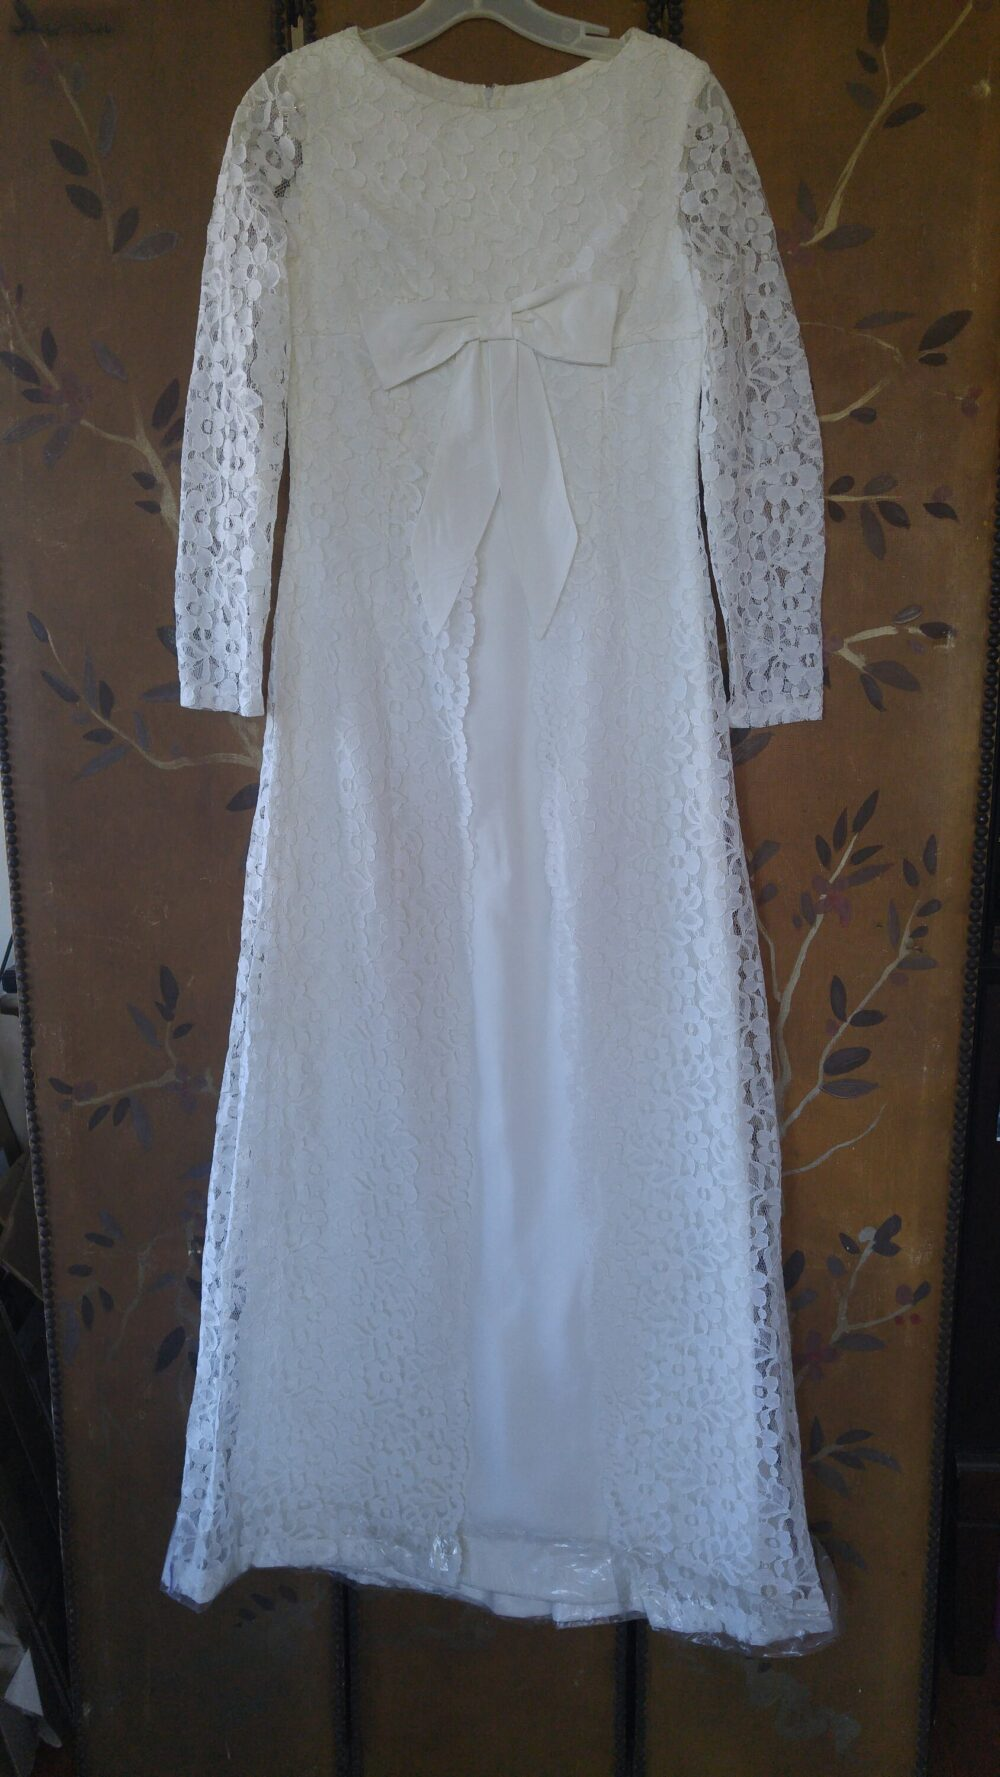 60's White Lace Maxi Length Wedding/Bridesmaid Dress With Large Ribbon Bow At Front, Never Worn